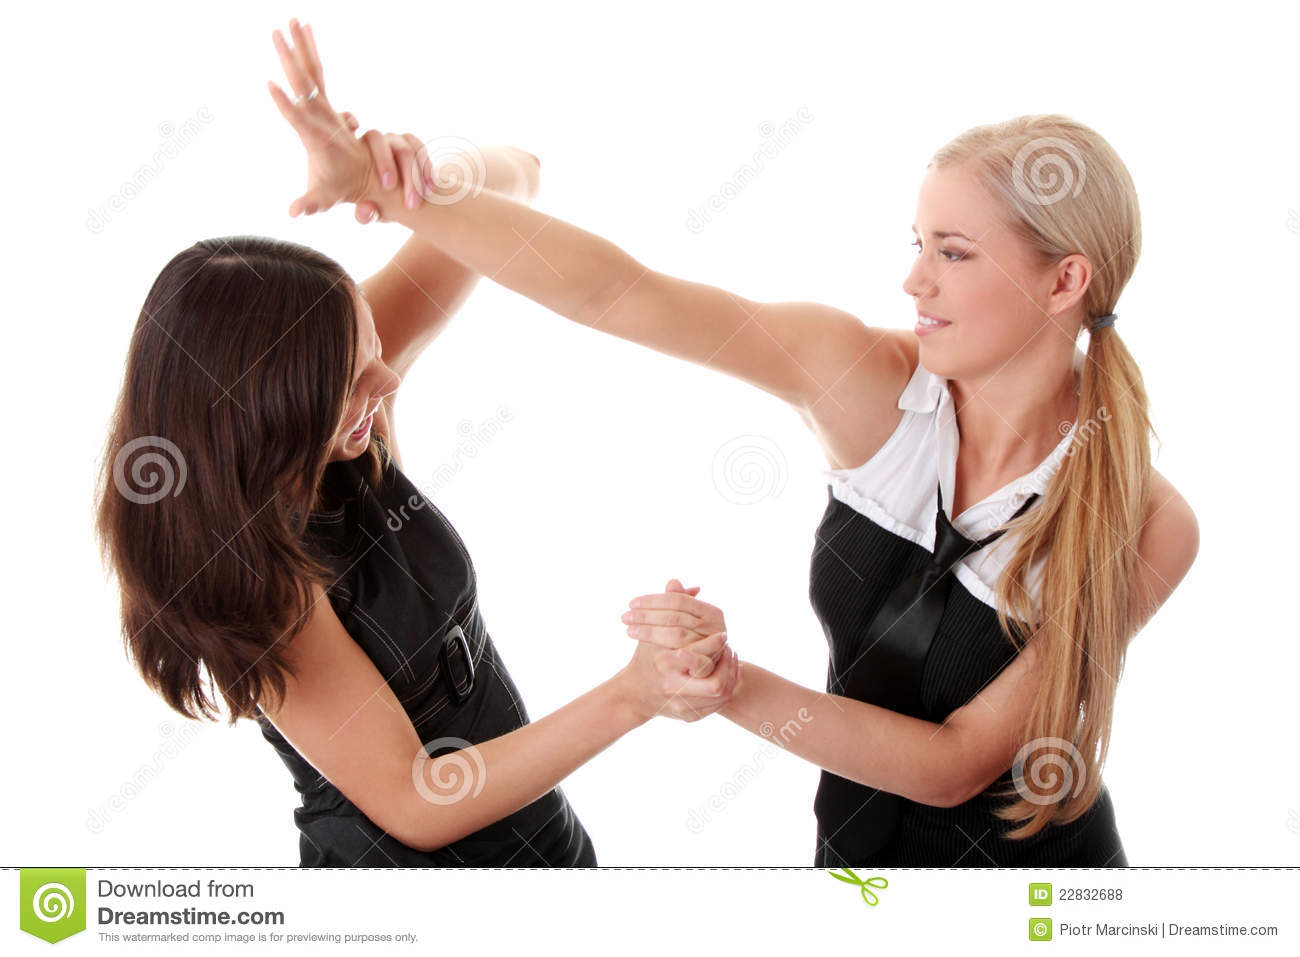 Men and woman fist fighting